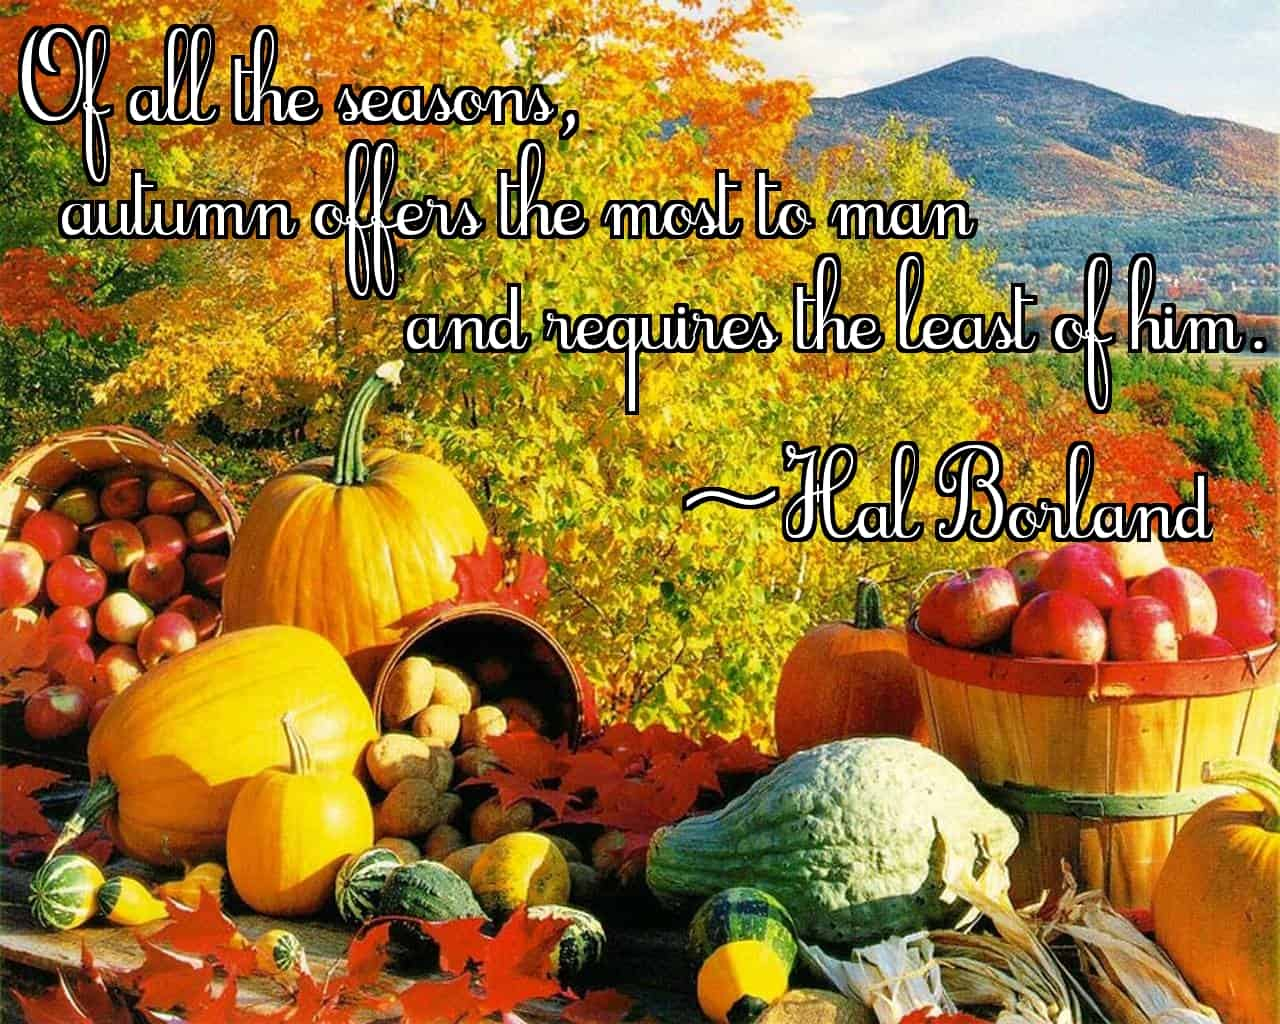 """Of all the seasons, autumn offers the most to man and requires the least of him."" ~Hal Borland"